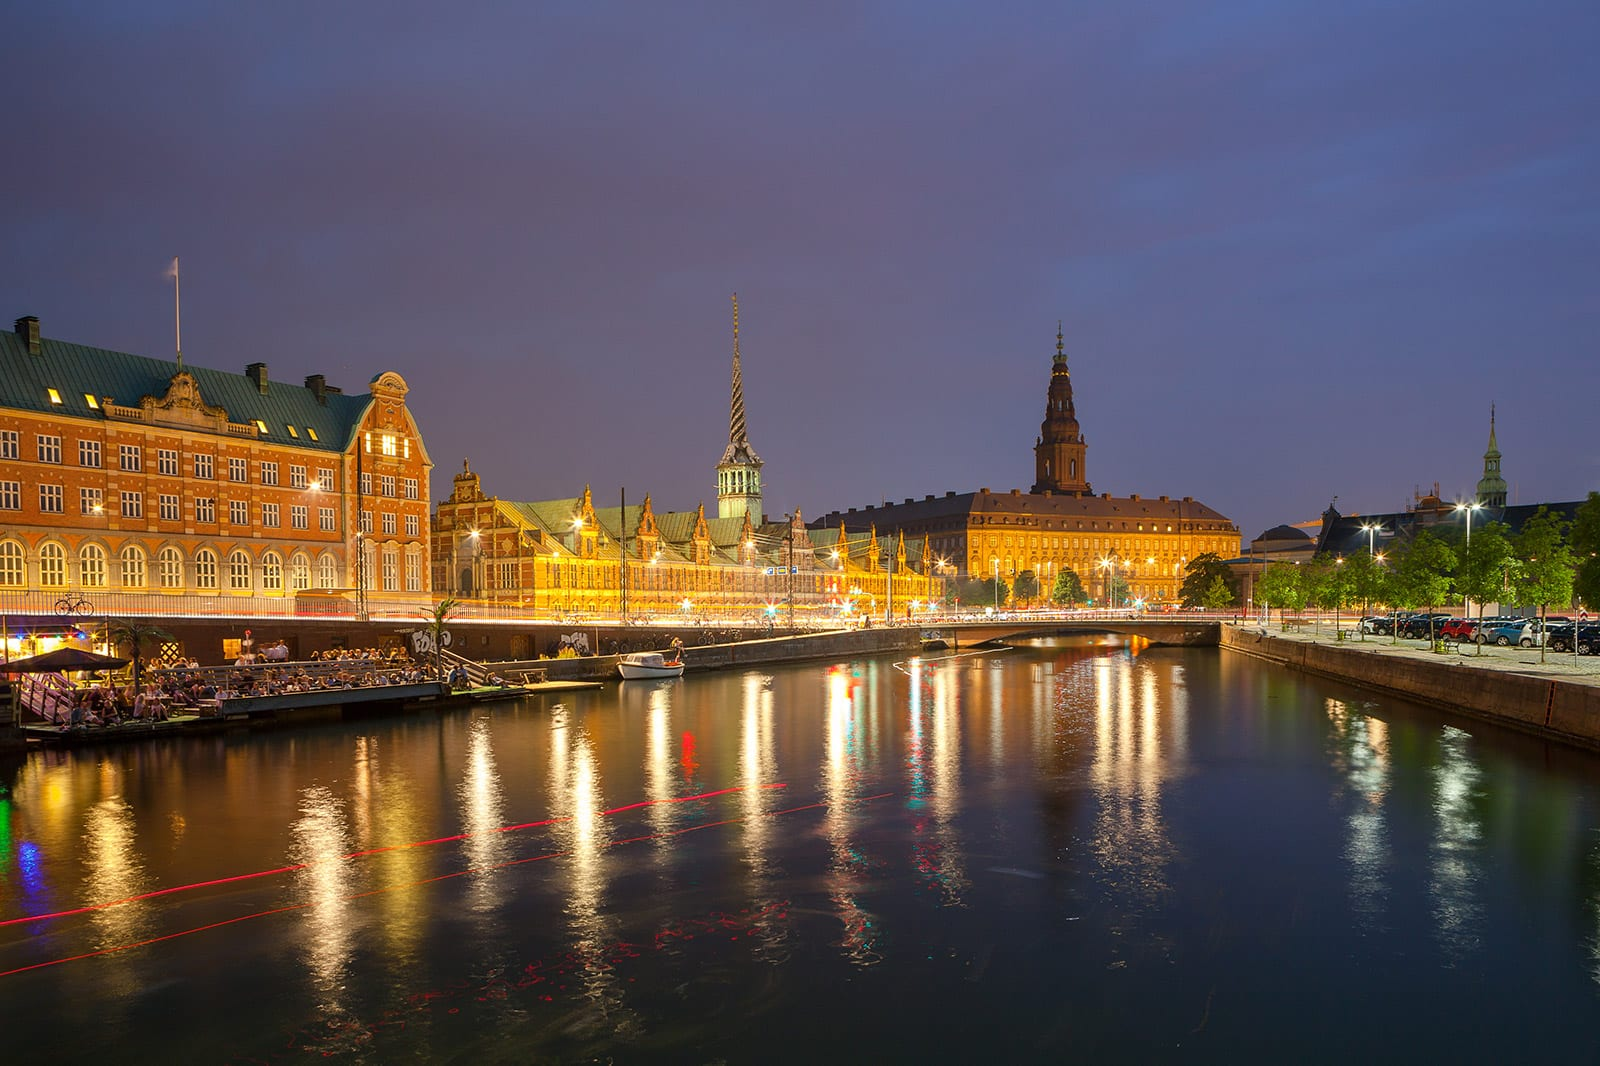 Christiansborg Palace and the old stock exchange